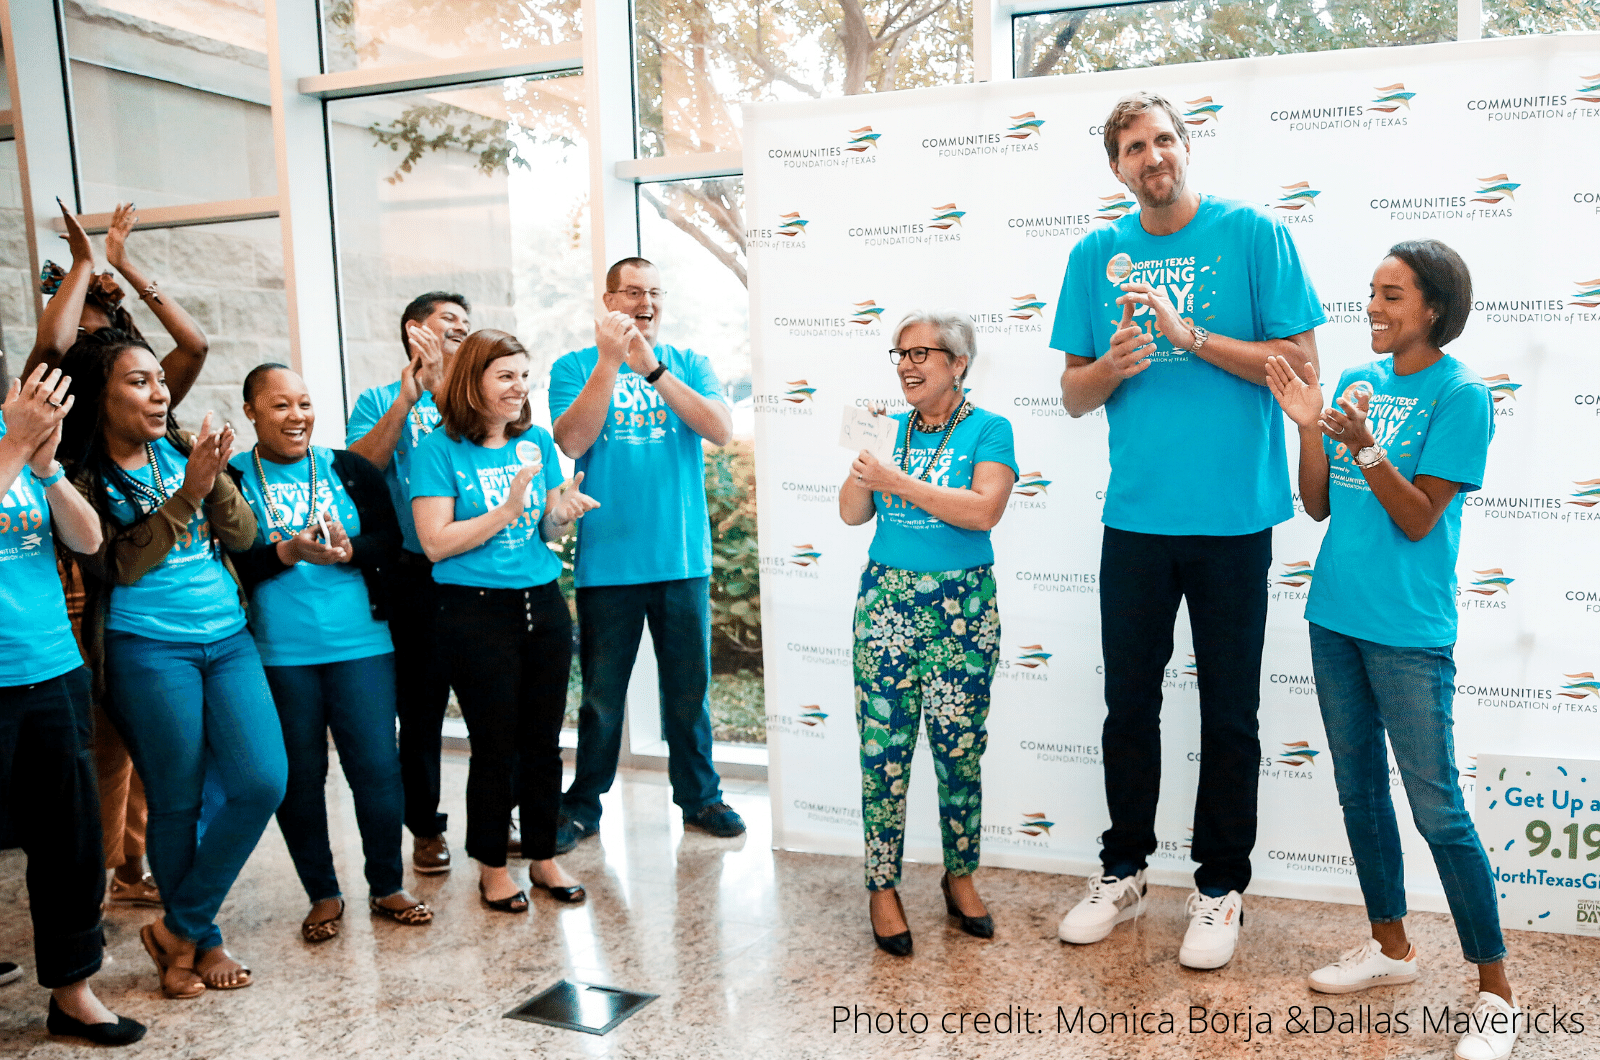 Susan Swan Smith and Nowitzkis cheering on giving day team